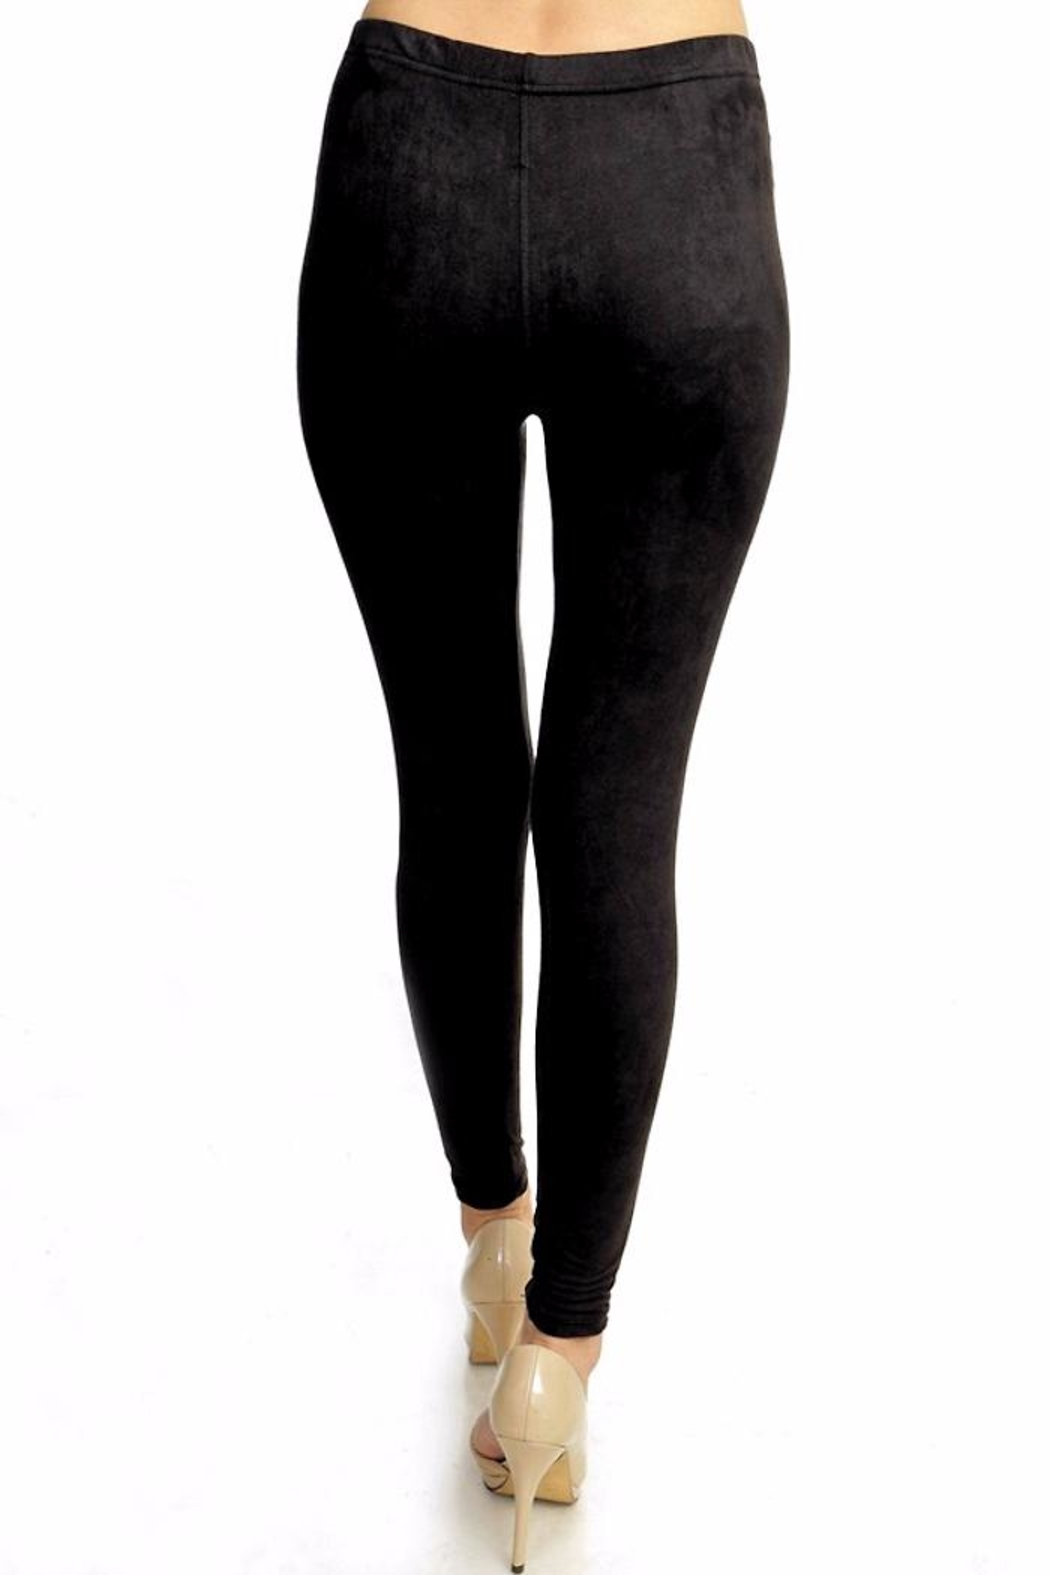 People Outfitter My Suede Leggings - Back Cropped Image